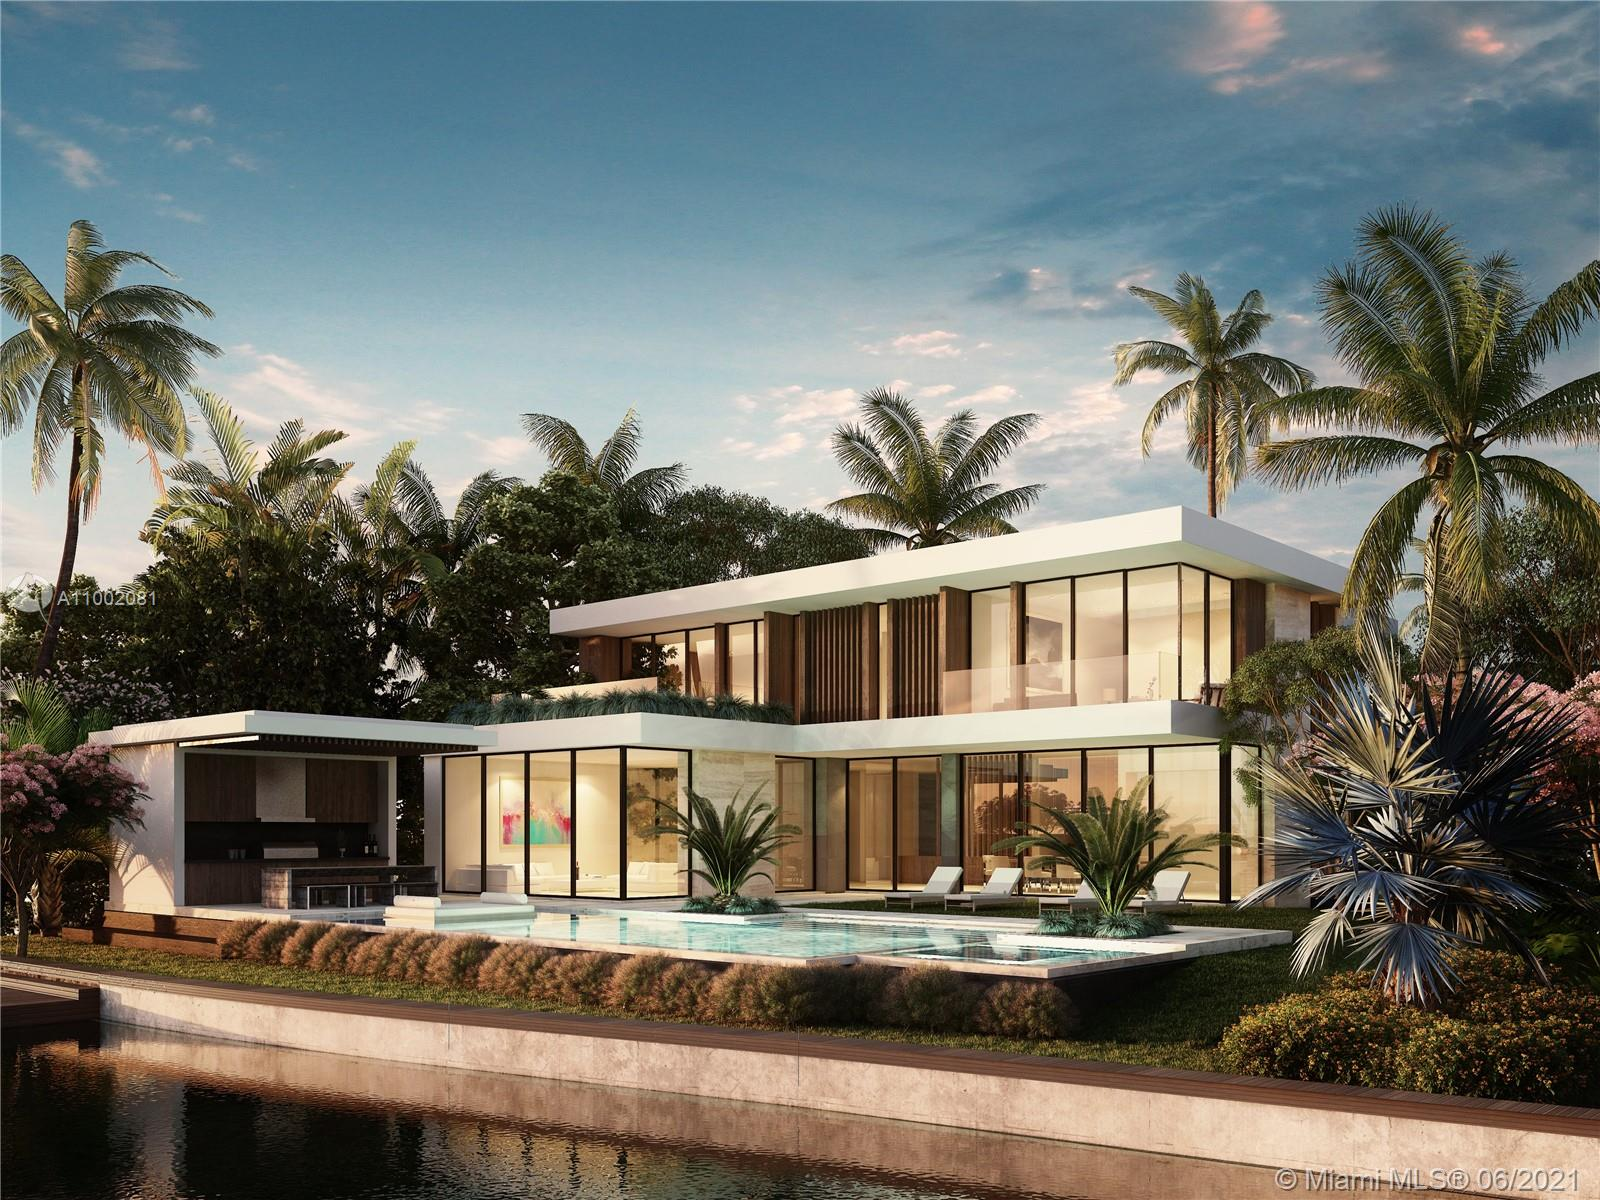 Clara Homes to build new luxury waterfront mansion with west facing wide bay sunset views of the Miami skyline. Located on the premier Venetian Islands, this modern home embodies architectural simplicity, open plan indoor/outdoor living and luxury amenities. Dramatic entry with high ceilings leads to living areas, gourmet kitchen + chef's kitchen, family rm, dining area, entertainment bar. Oversize 13,000 sq foot lot with 103 feet of waterfront, and 6,700 of adjusted sq house area. Top-of-the-line finishes, theater with state-of-the-art sound, Savant home-automation, Boffi fixtures, designer lighting. Completion Fall of 2022.